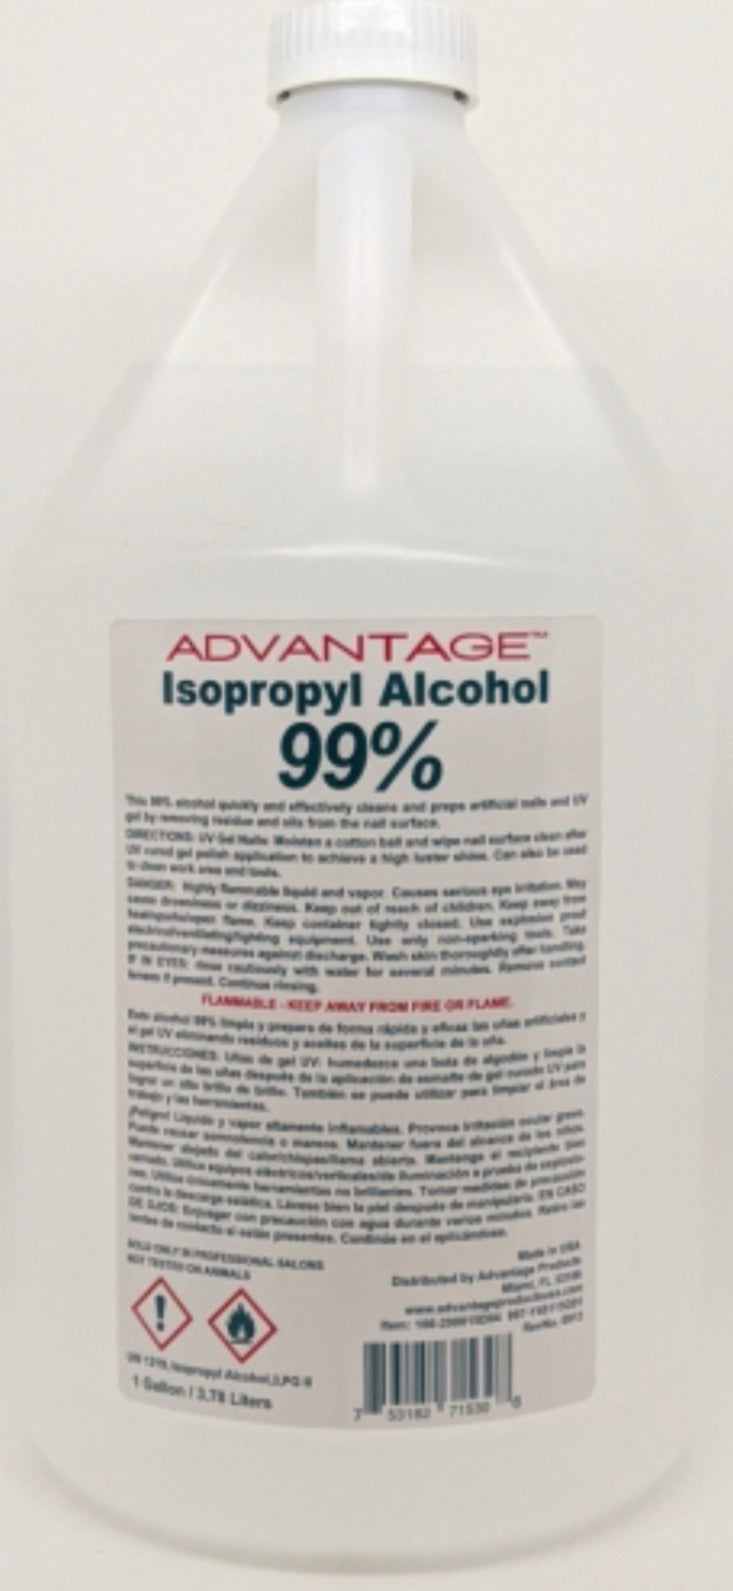 Advantage 99% Isopropyl Alcohol - 1 Gallon